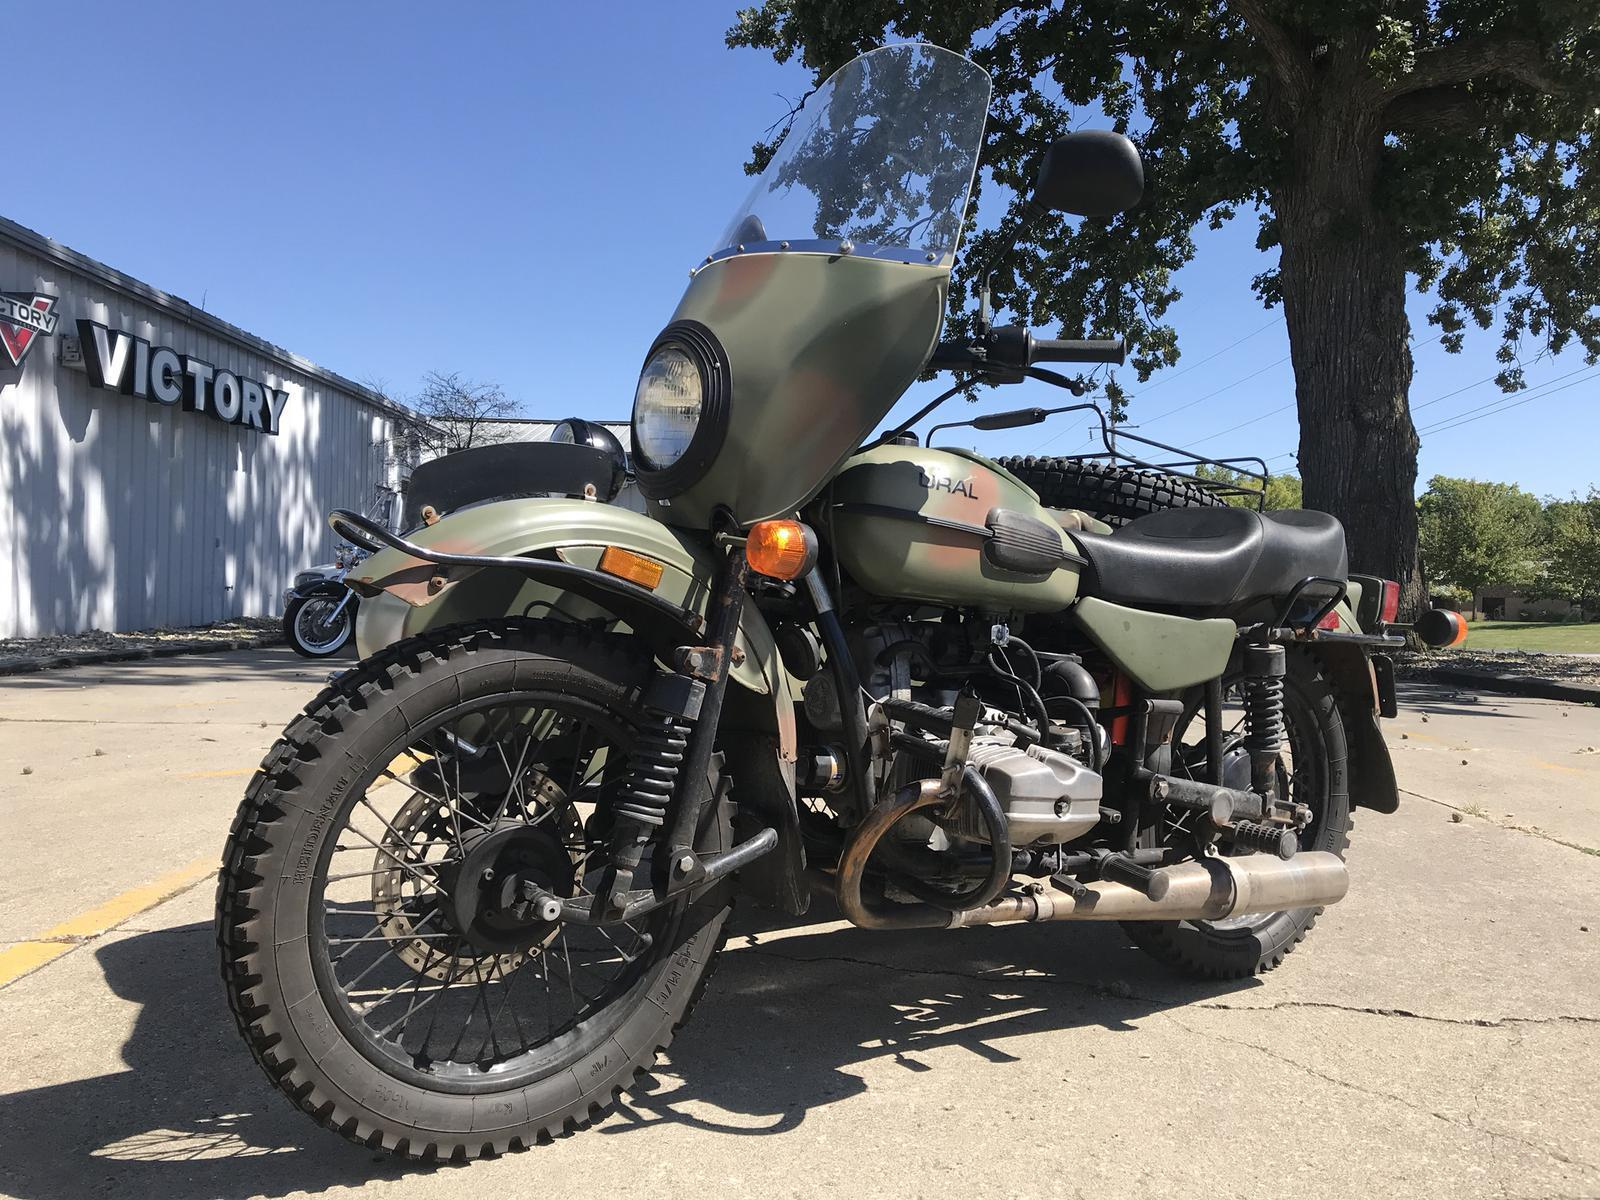 2010 Ural Gear Up for sale in Urbana, IL | Sportland Motorsports (217) 328-5005